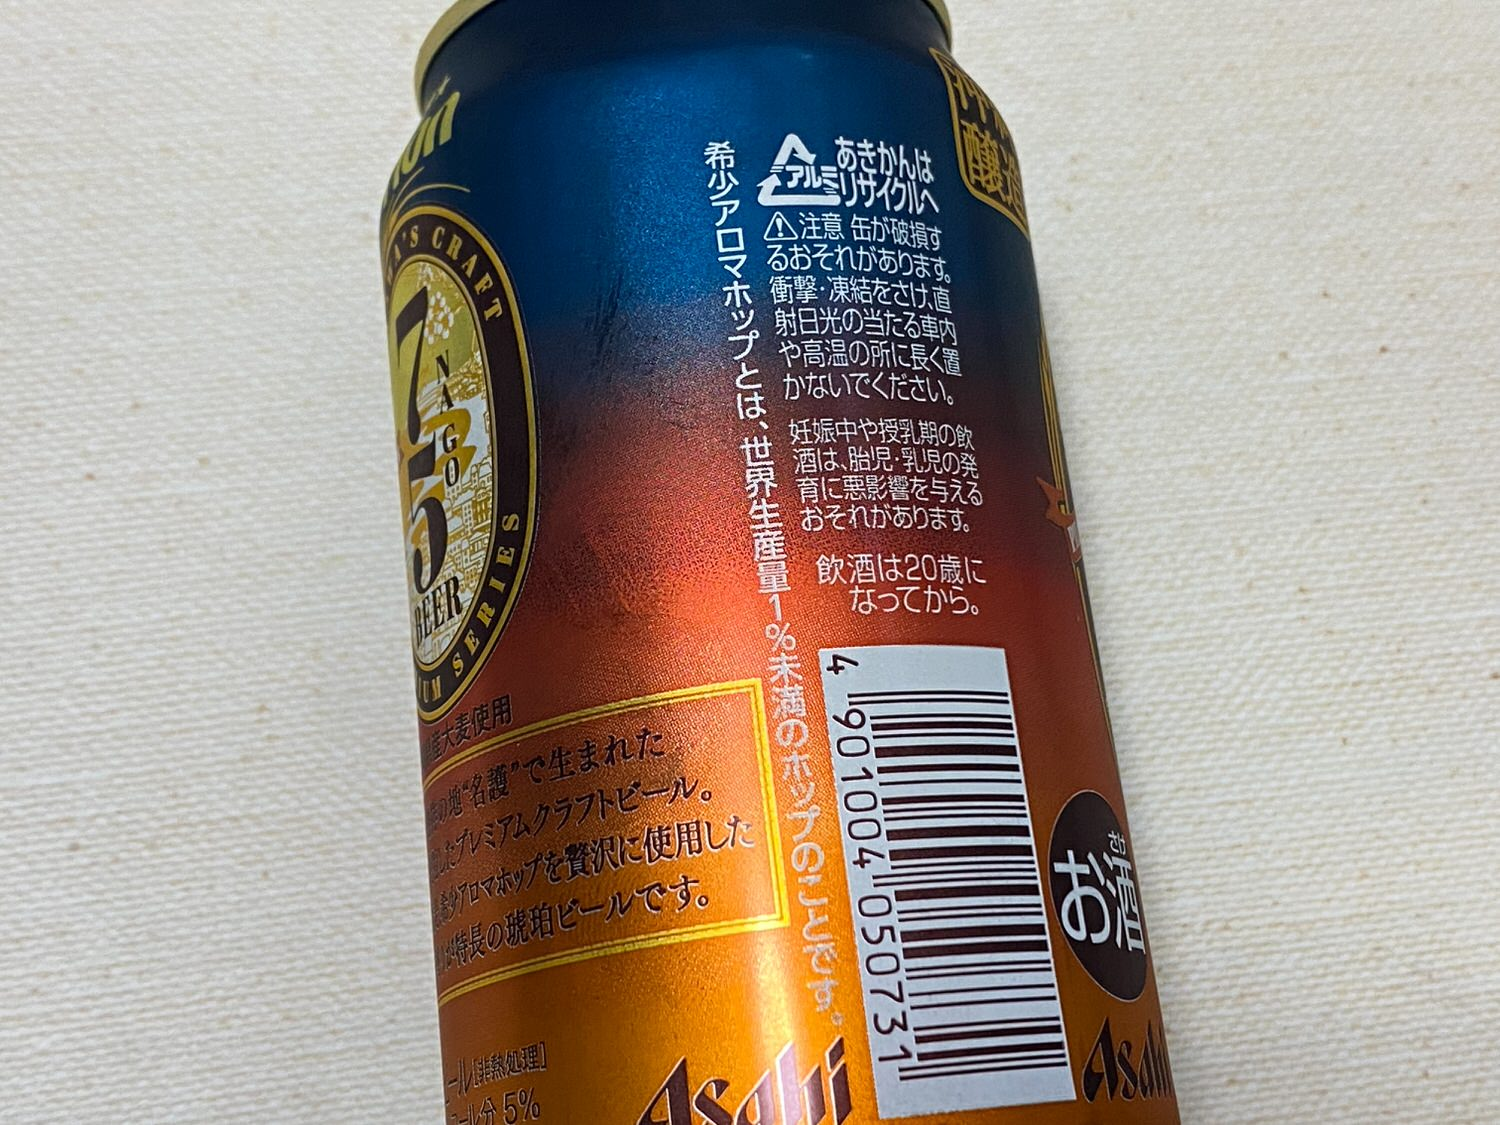 Orion 75 beer 03 04